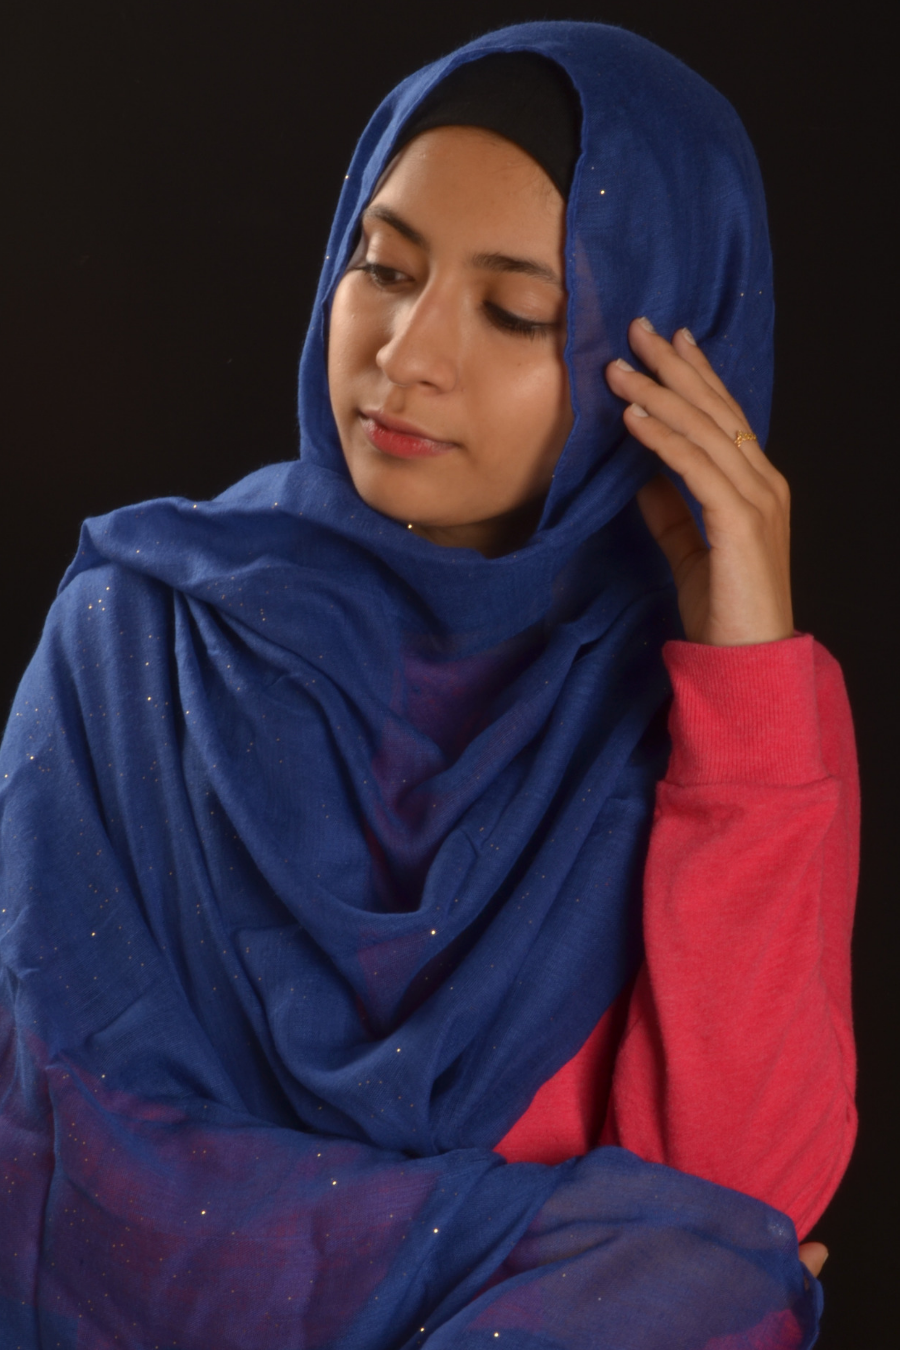 Royal Blue Hijab with Glitters - Fakhur